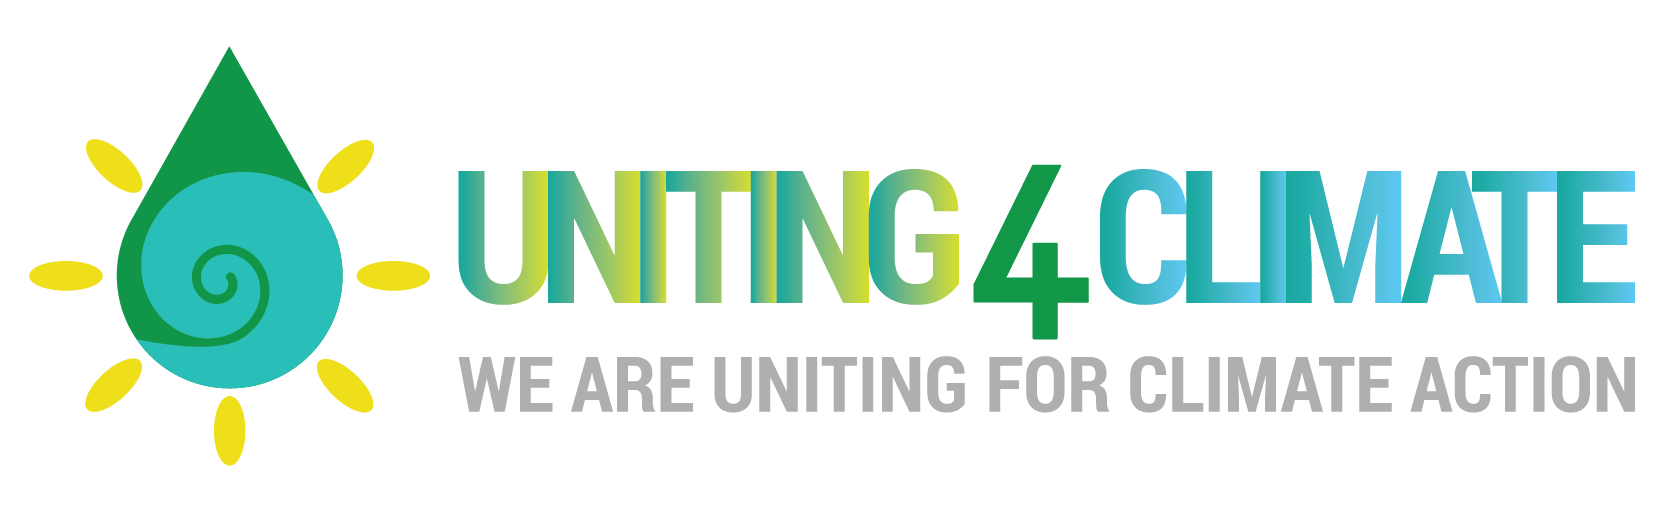 #Uniting4Climate Campaign Logo